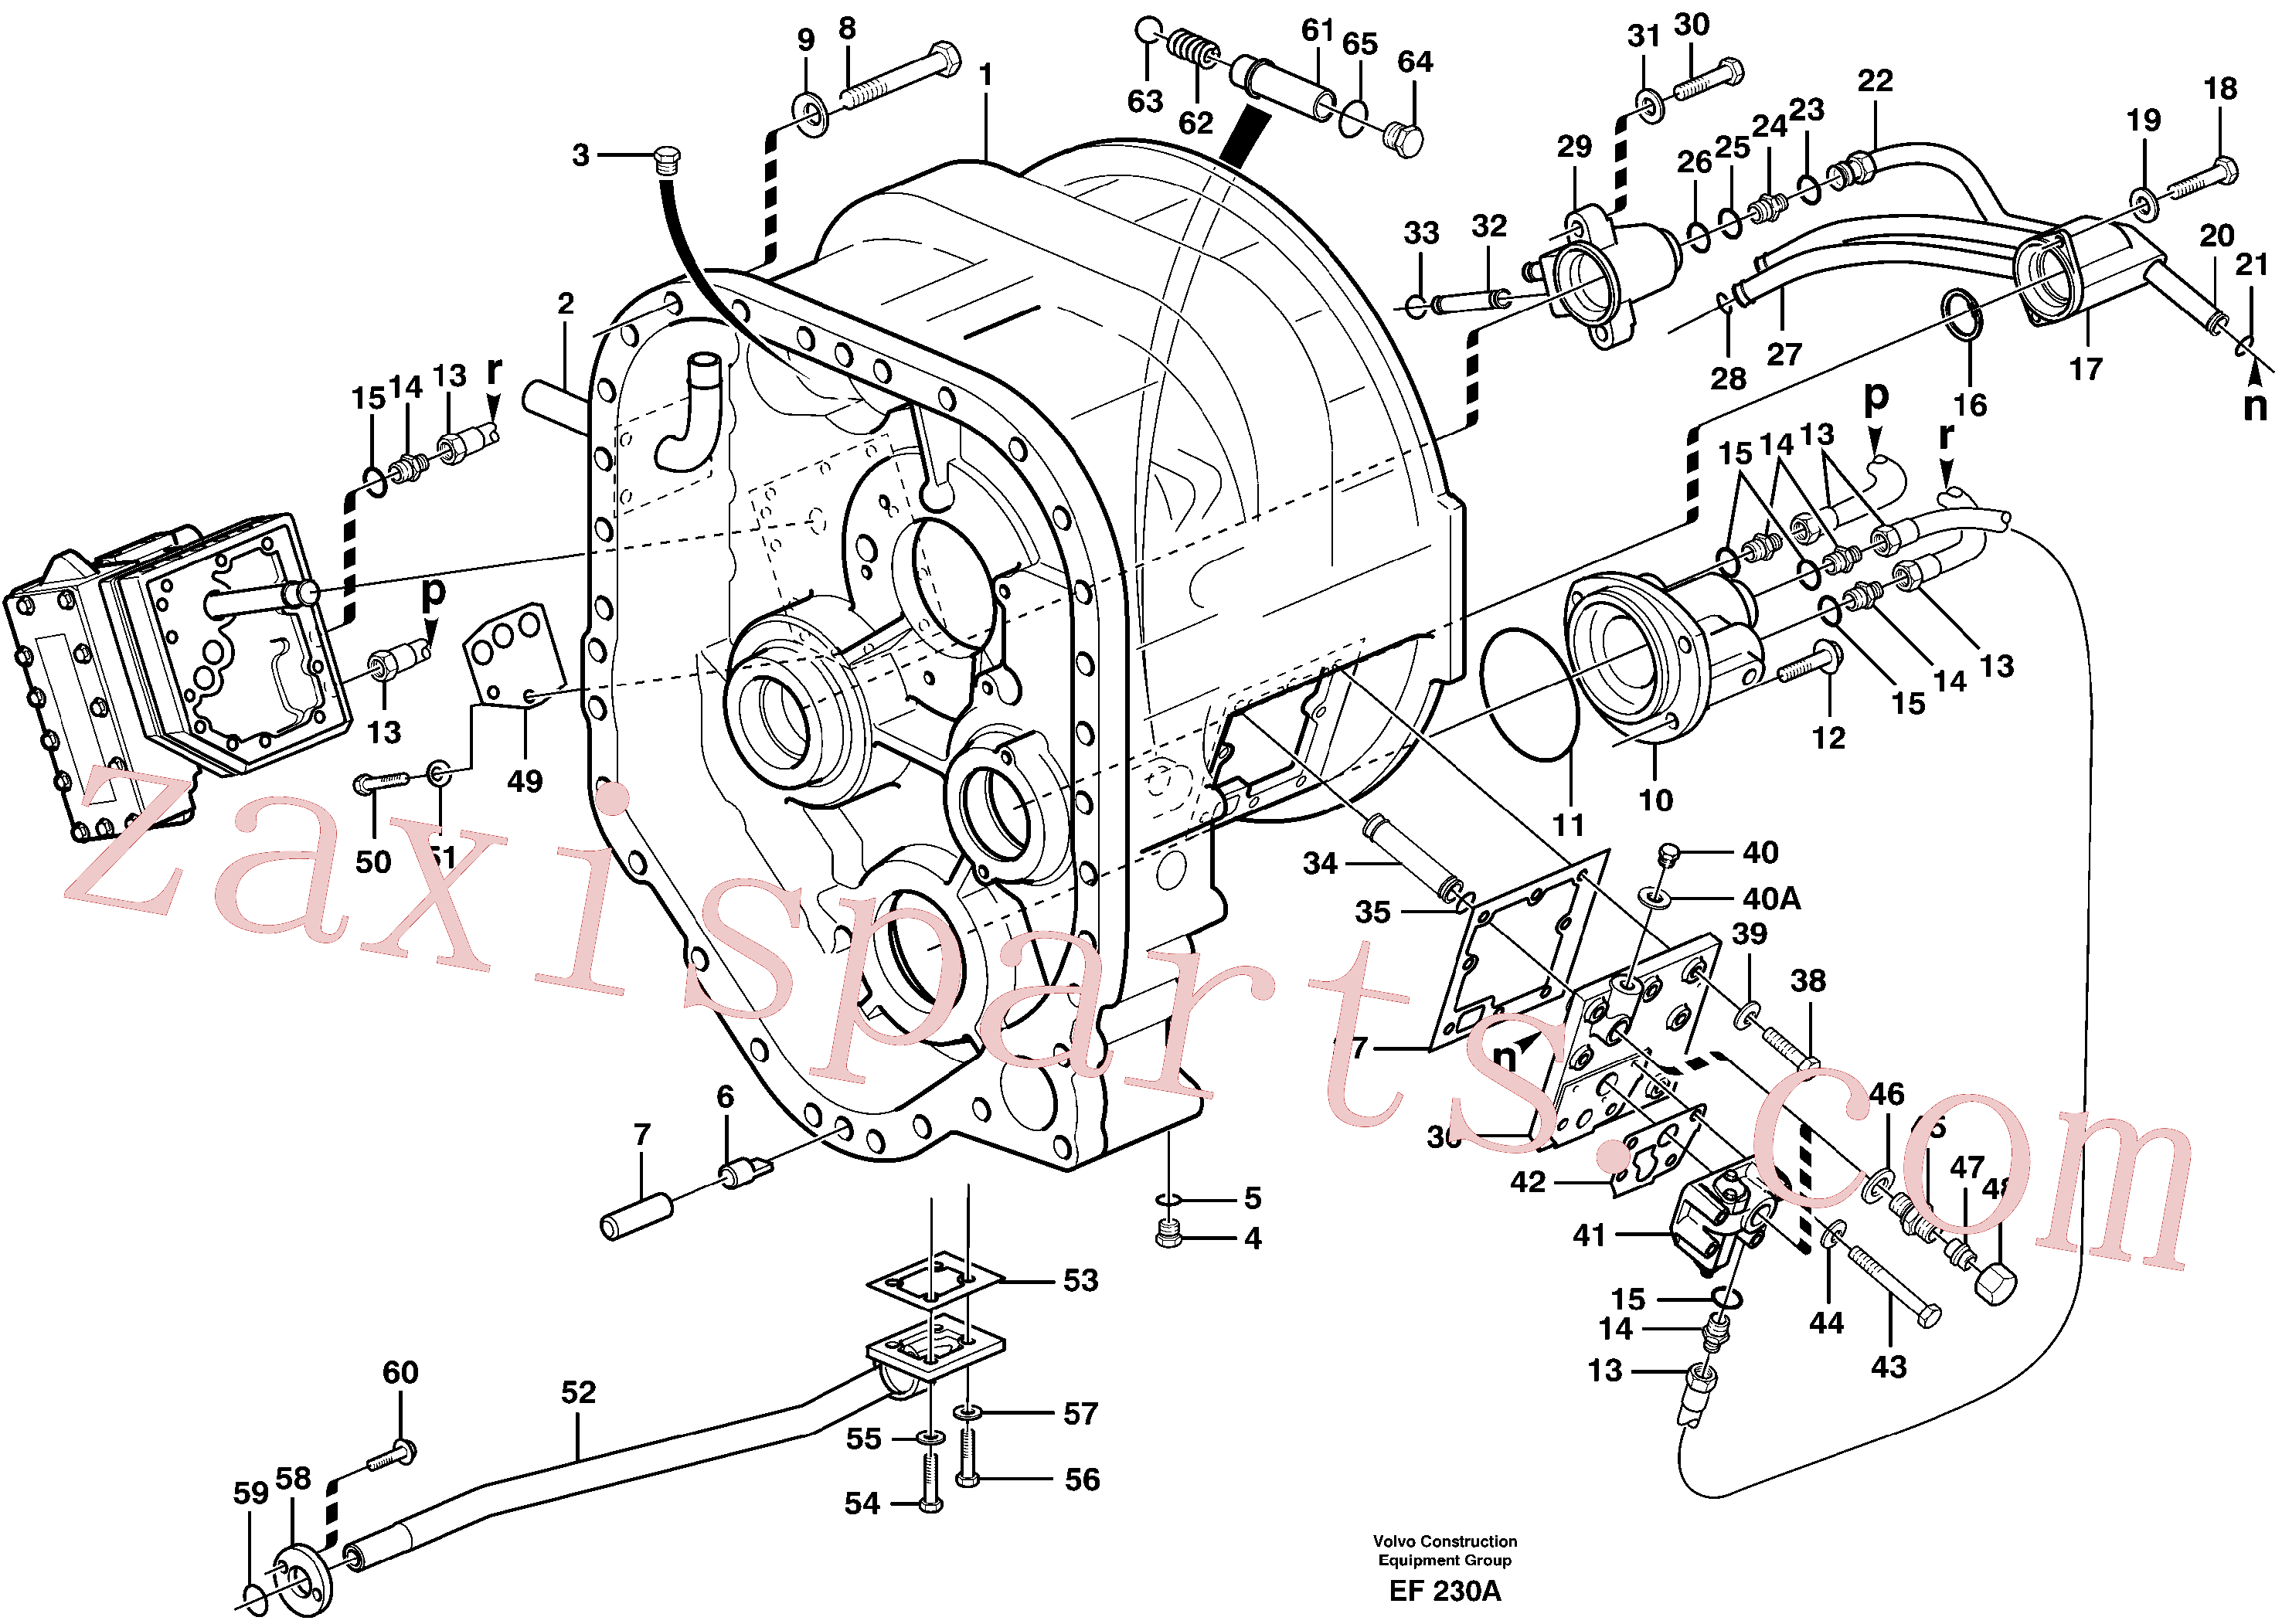 VOE14014596 for Volvo Converter housing with fitting parts(EF230A assembly)